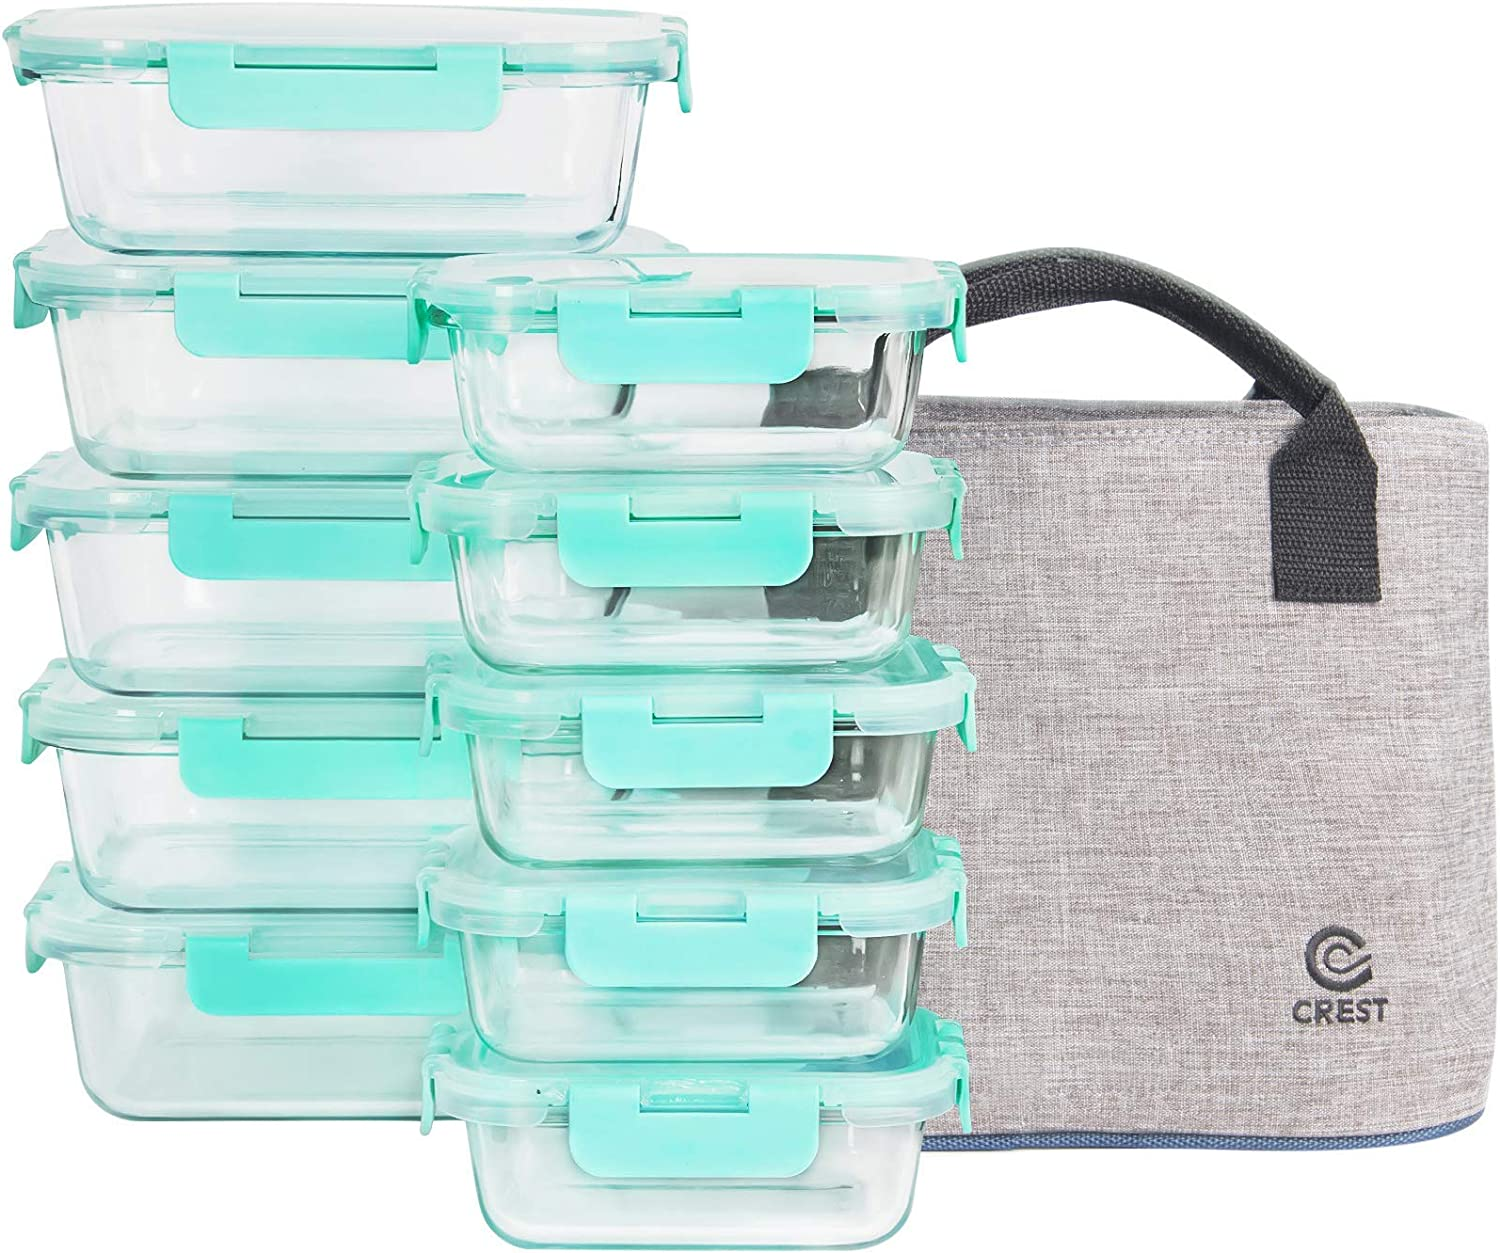 [10-Pack] Glass Food Storage Containers with Lids, Airtight, BPA Free, Meal Prep Containers with Lunch BAG